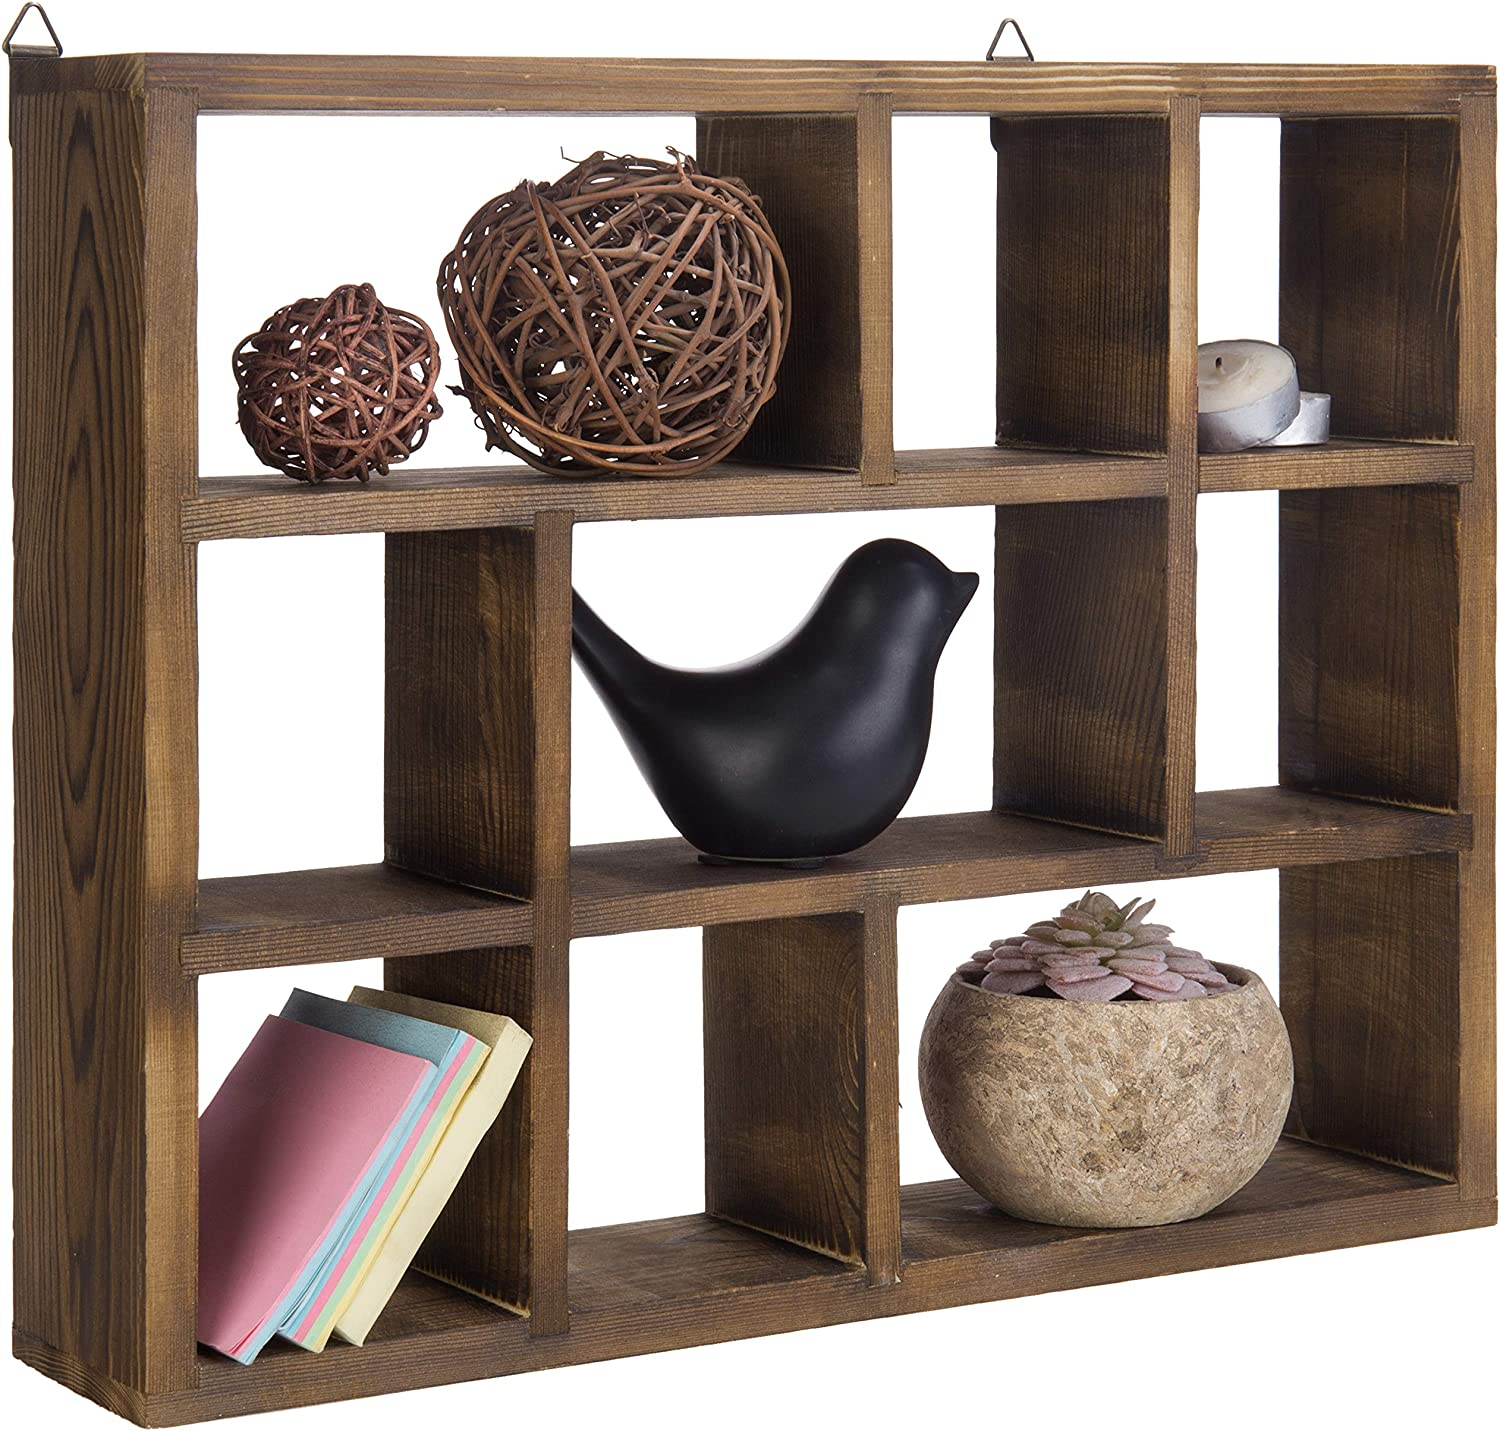 MyGift 9-Compartment Brown Wood Freestanding/Wall Mountable Shadow Box Shelf